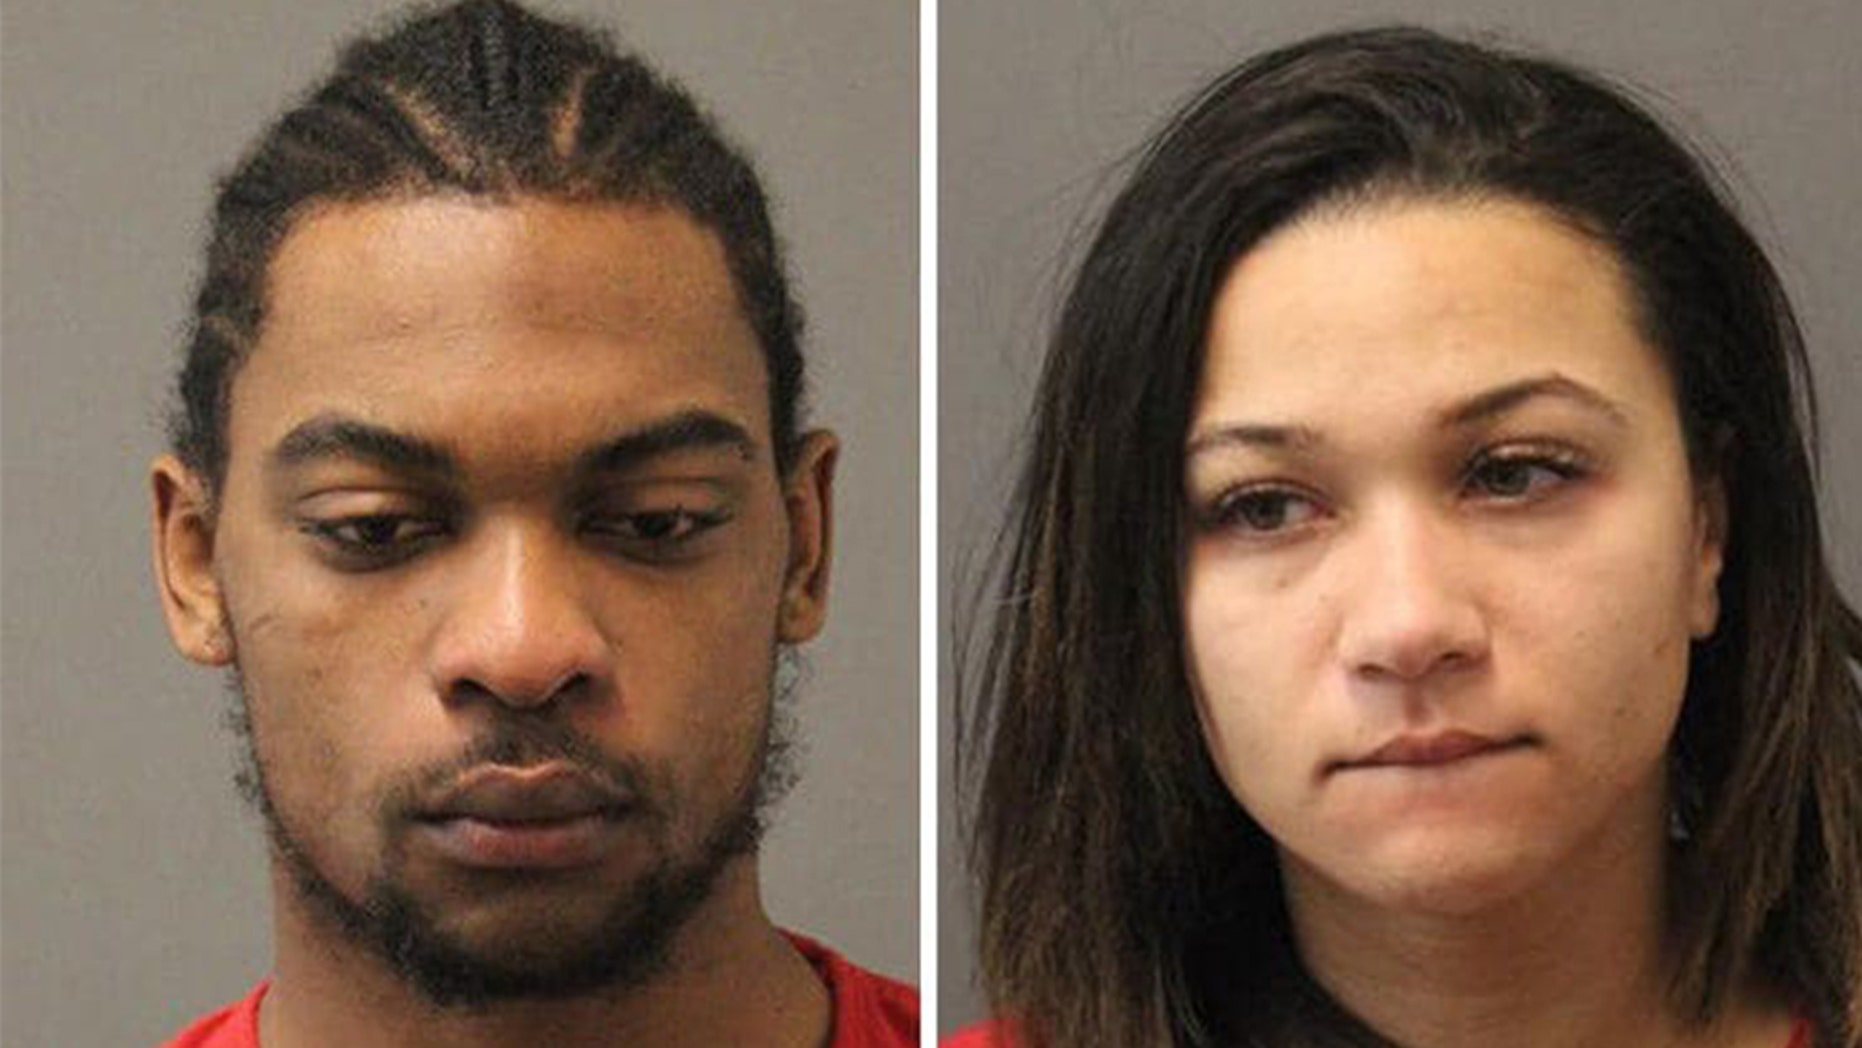 Washington Redskins safety Montae Nicholson, 23, and24-year-old SydneyMaggiore werecharged with misdemeanor assault and being drunk in public.